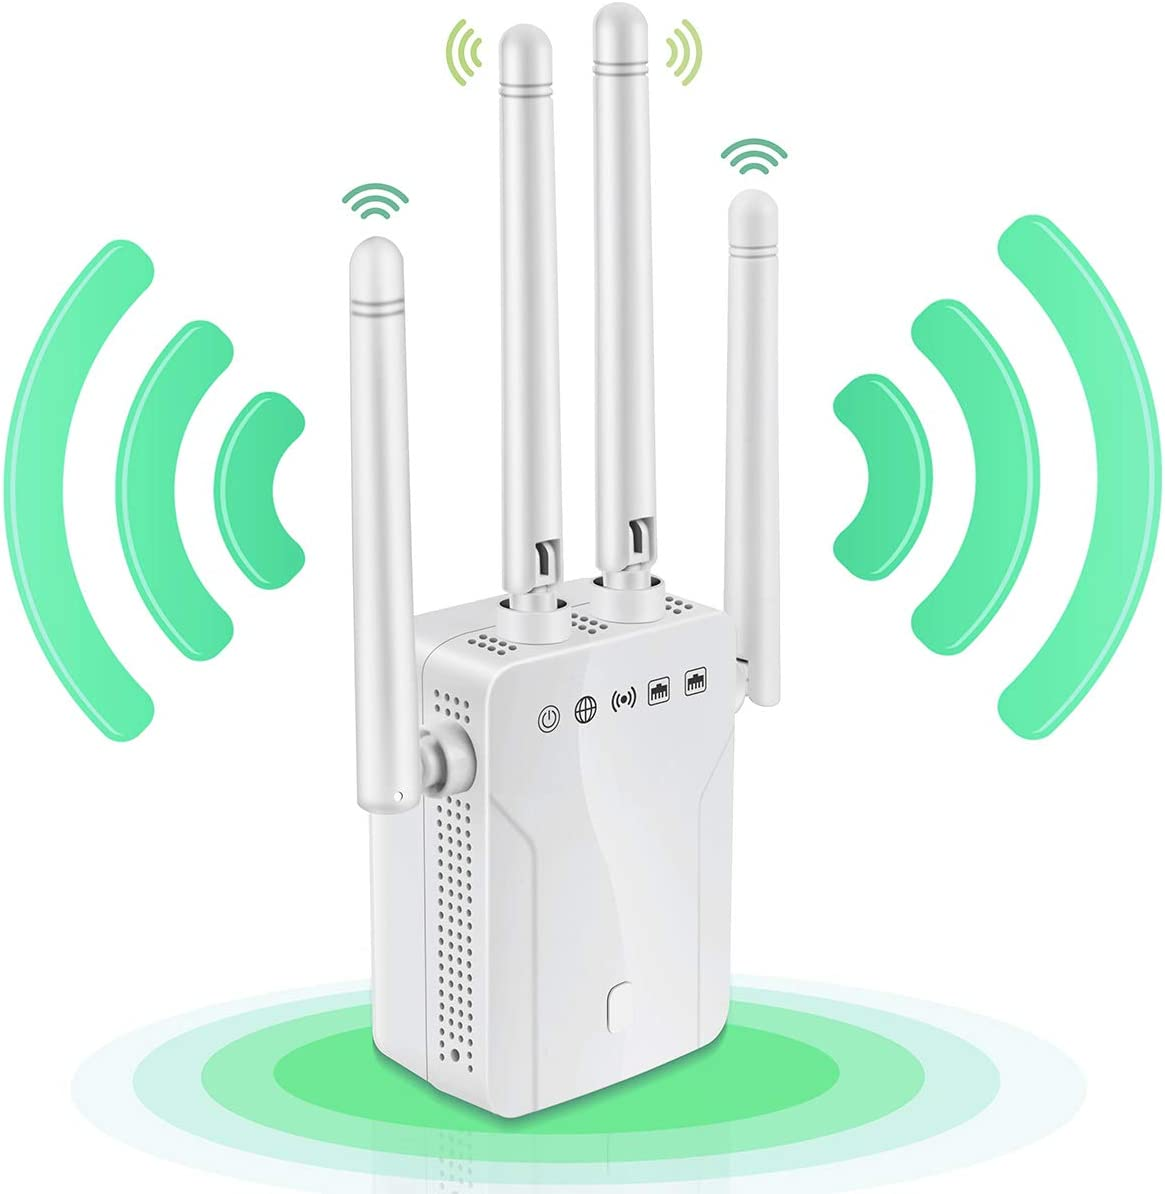 WiFi Range Max 76% Product OFF Extender 2.4 5GHz Dual 1200Mbps Band W WPS Repeater